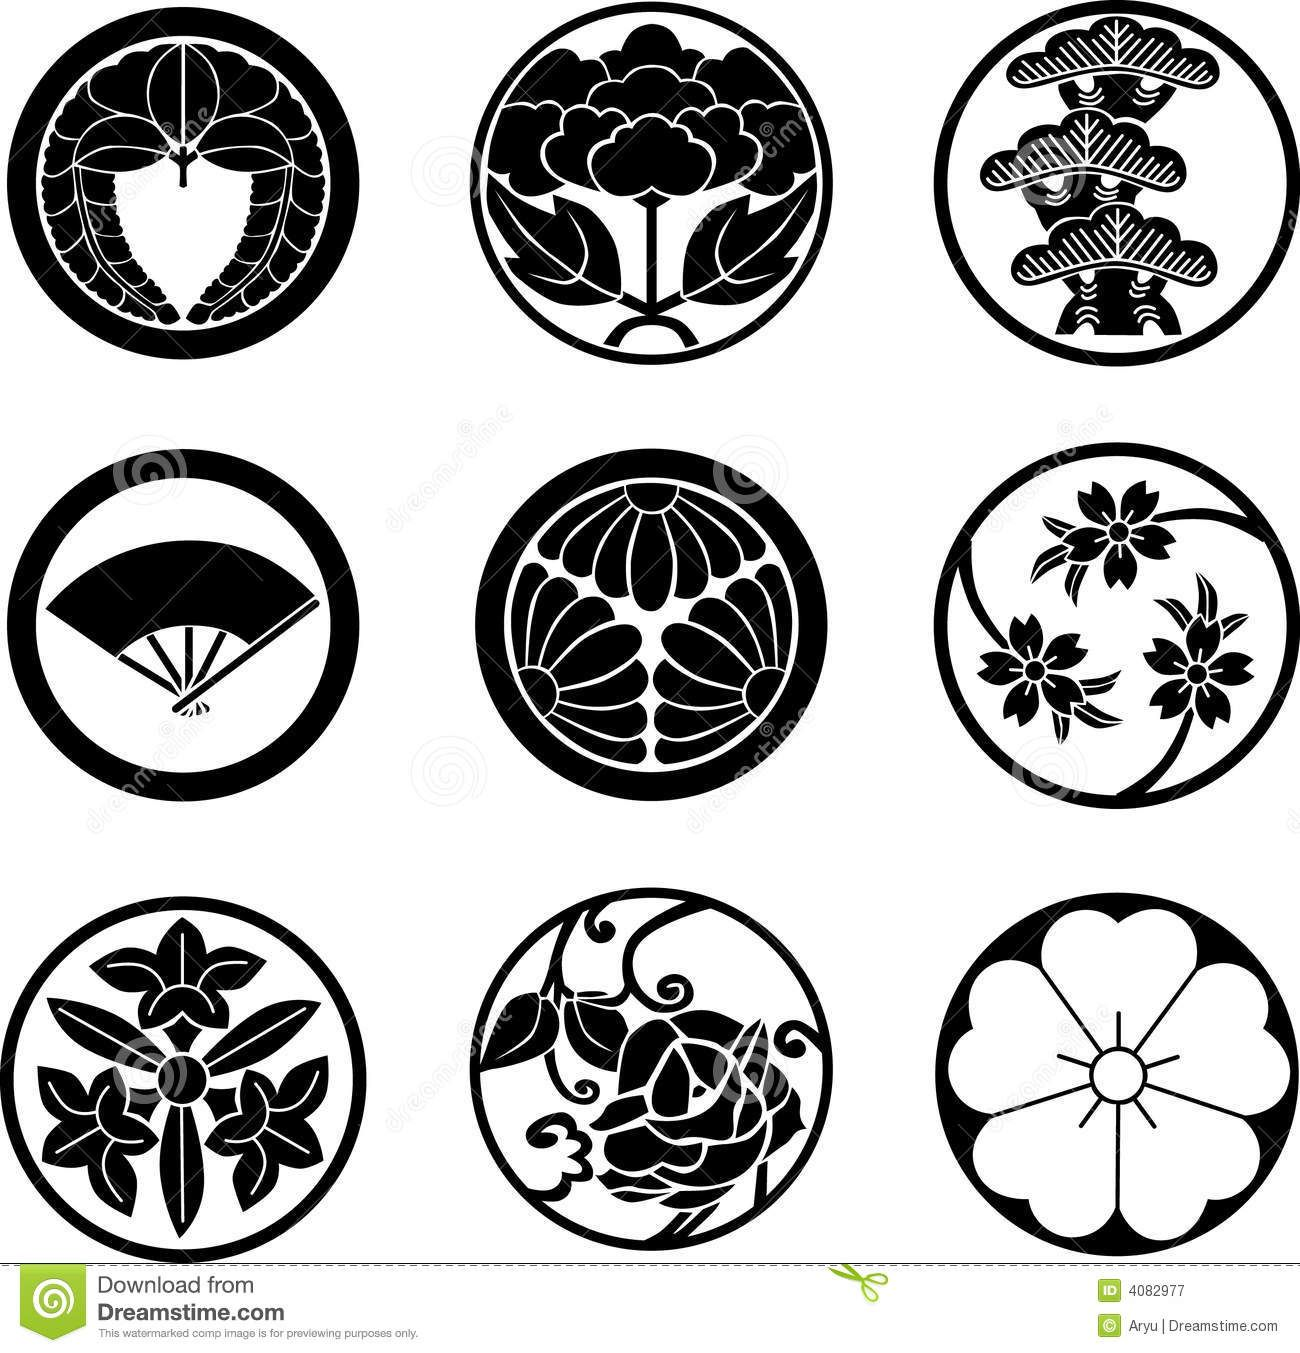 japanese-family-crests-4082977.jpg (1300×1353)